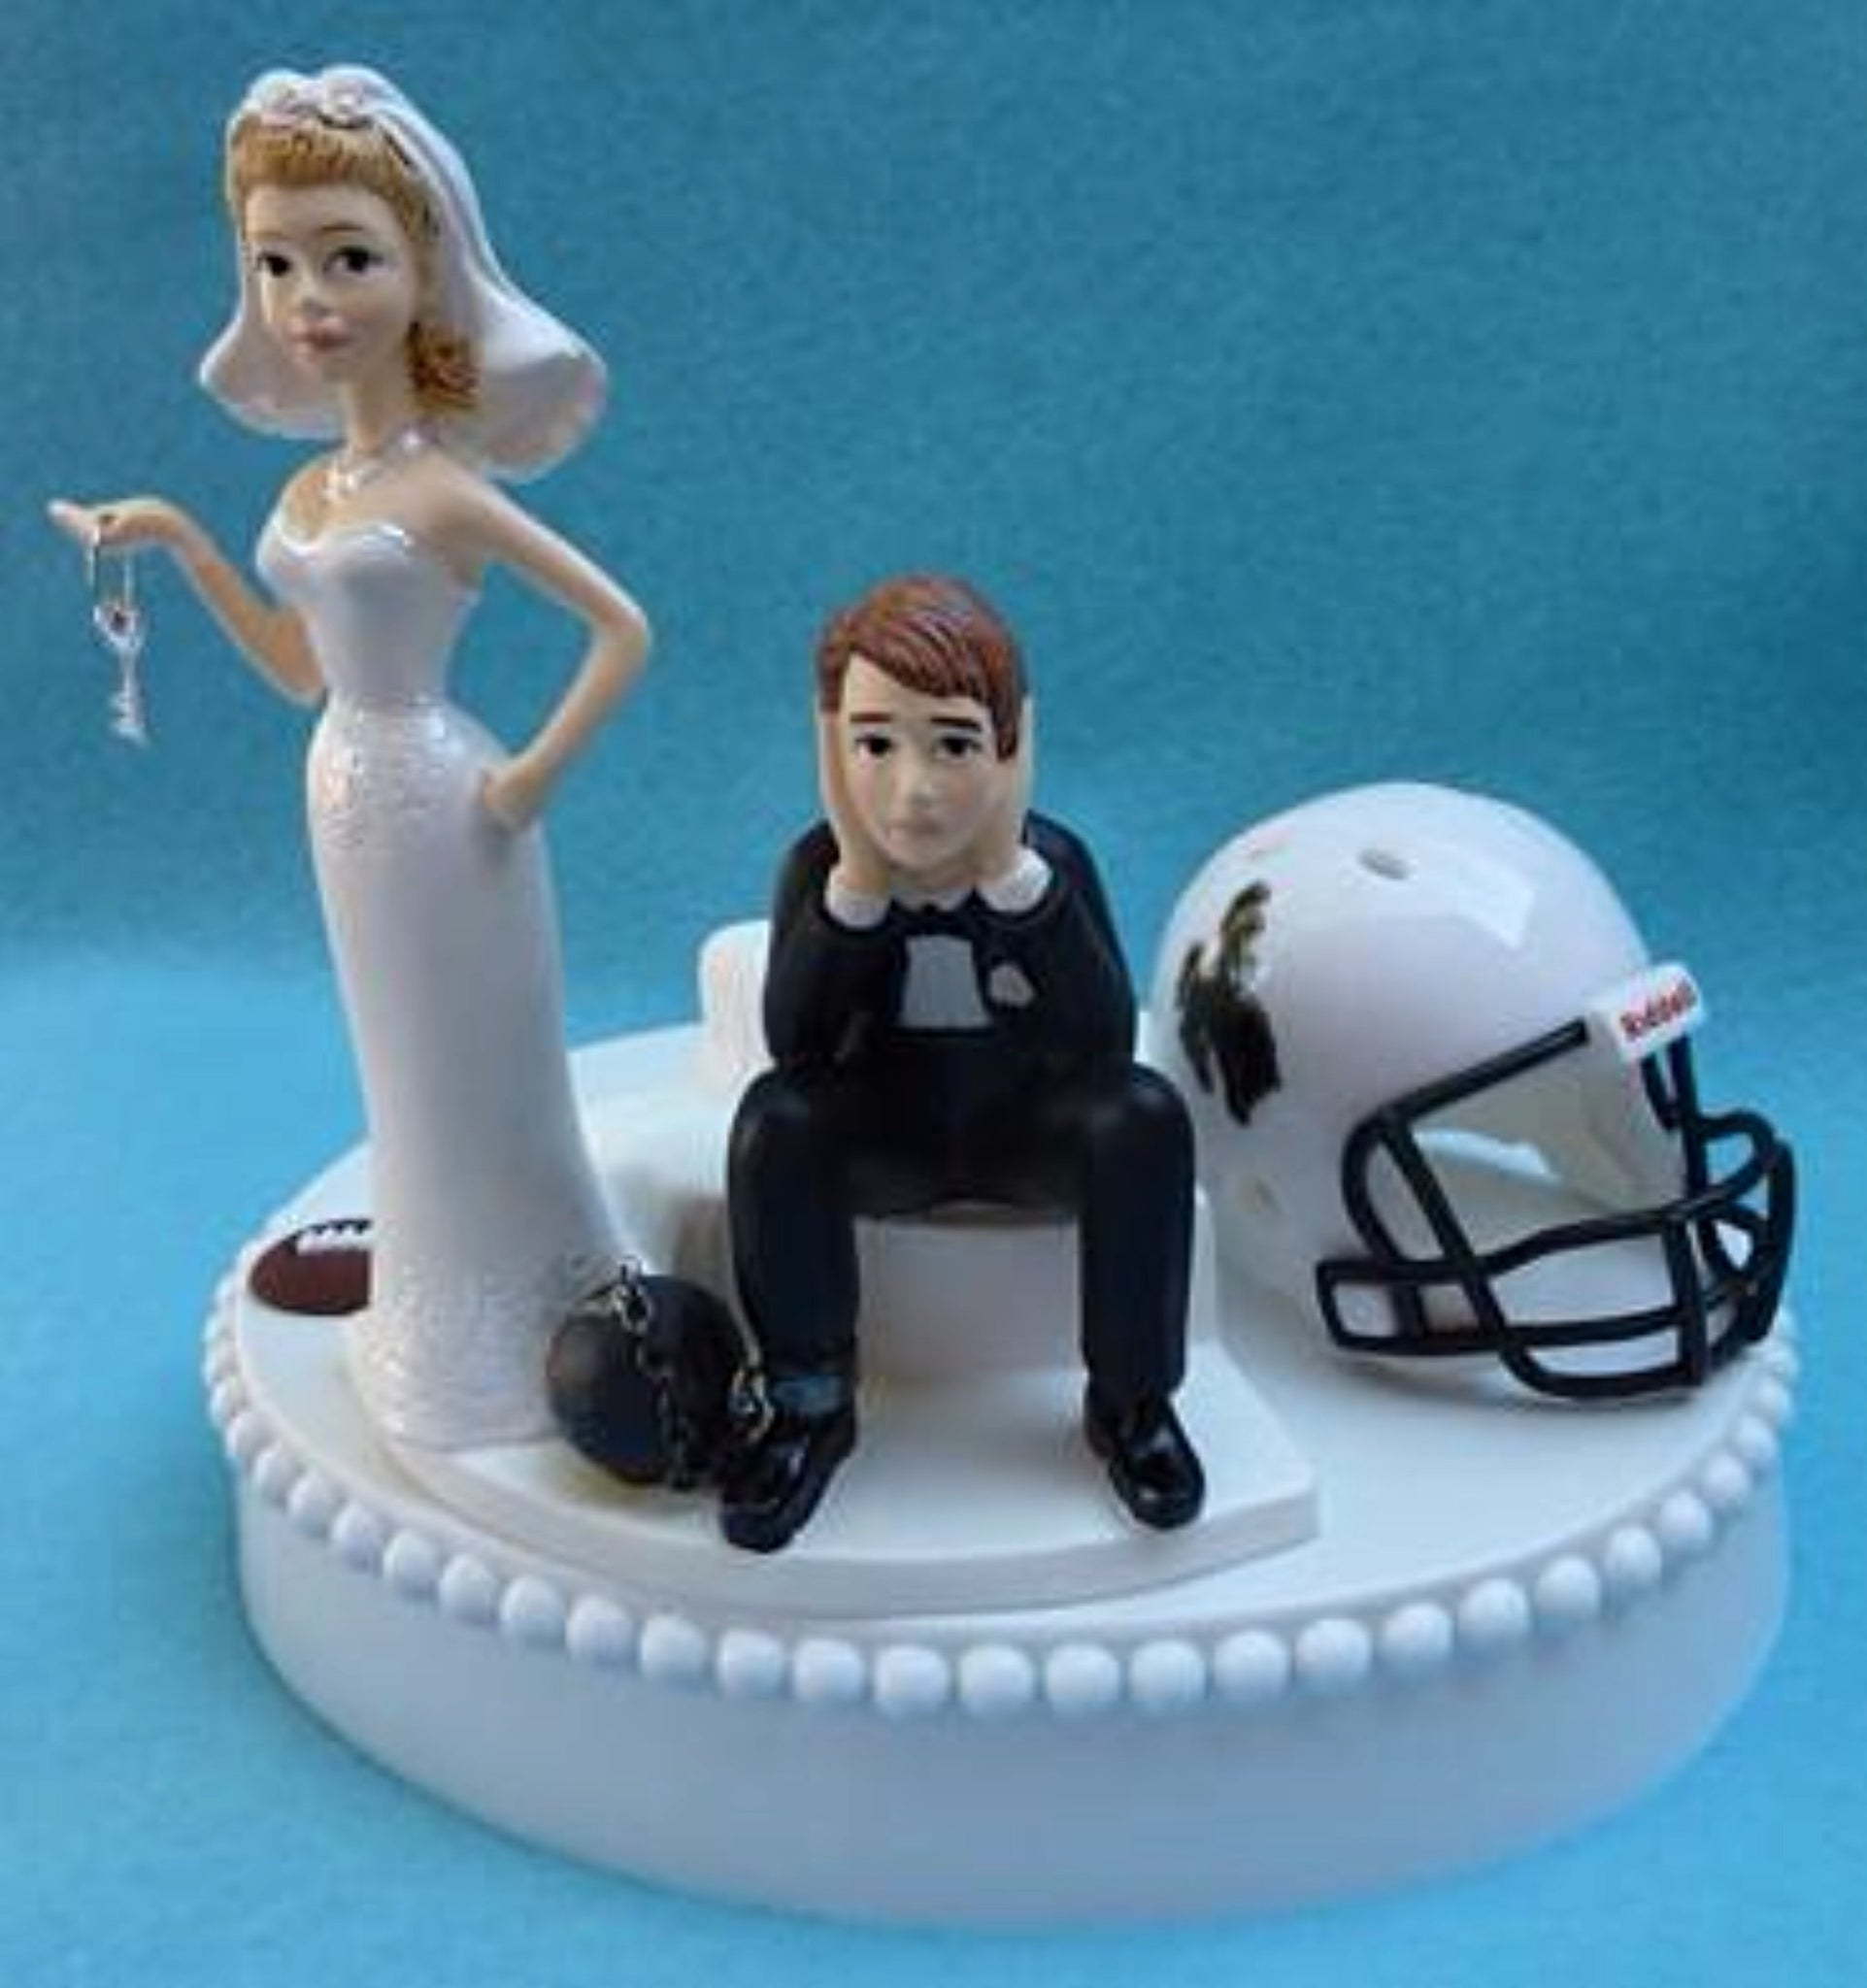 Wyoming Cowboys wedding cake topper University of UW football fans funny bride sad groom key ball chain humorous Fun Wedding Things